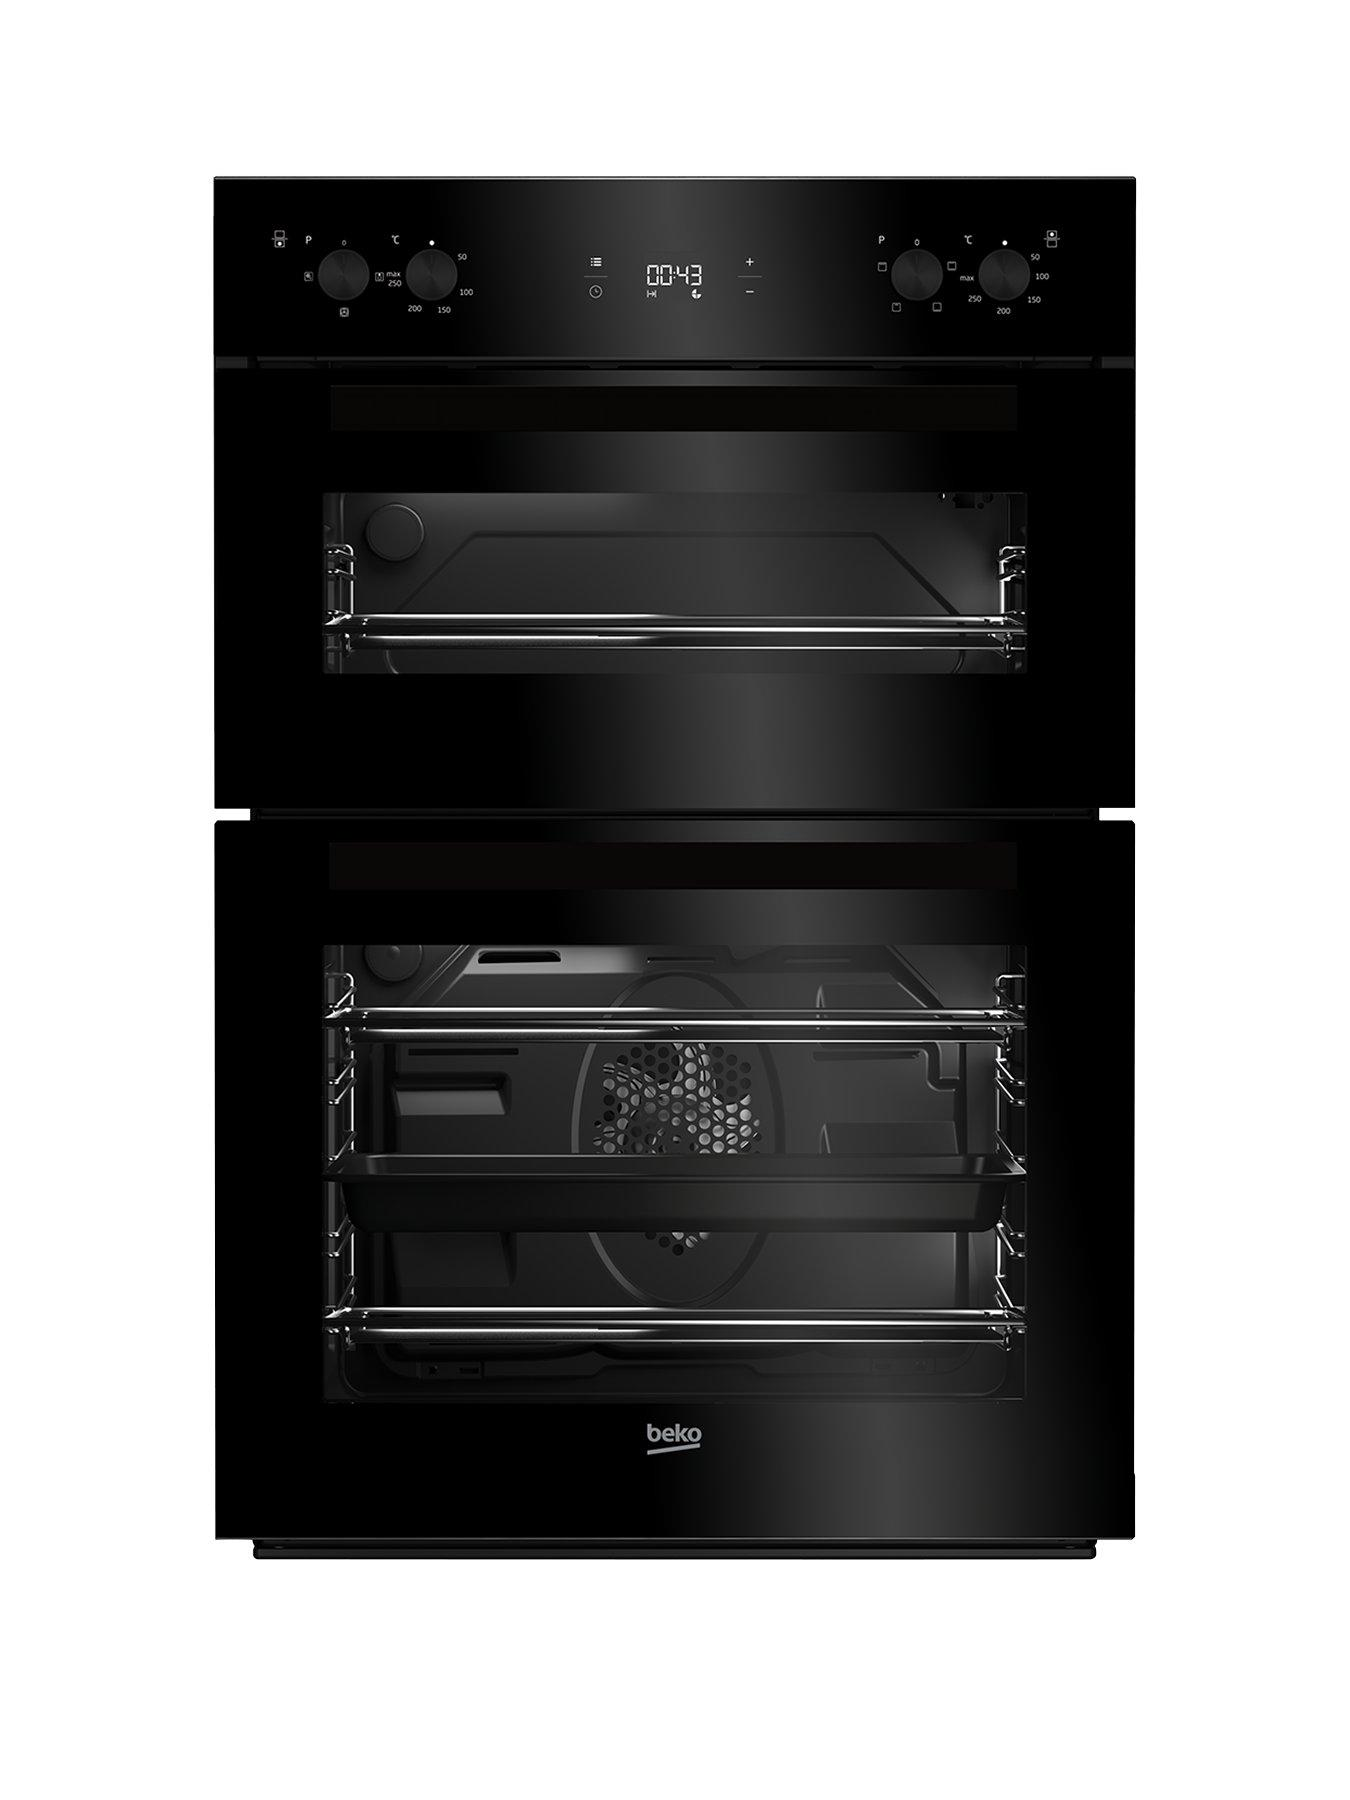 beko electric cooker wiring diagram 07 gsxr 600 ignition cookers electricals www littlewoods com bdf22300b 60cm built in double oven with connection black